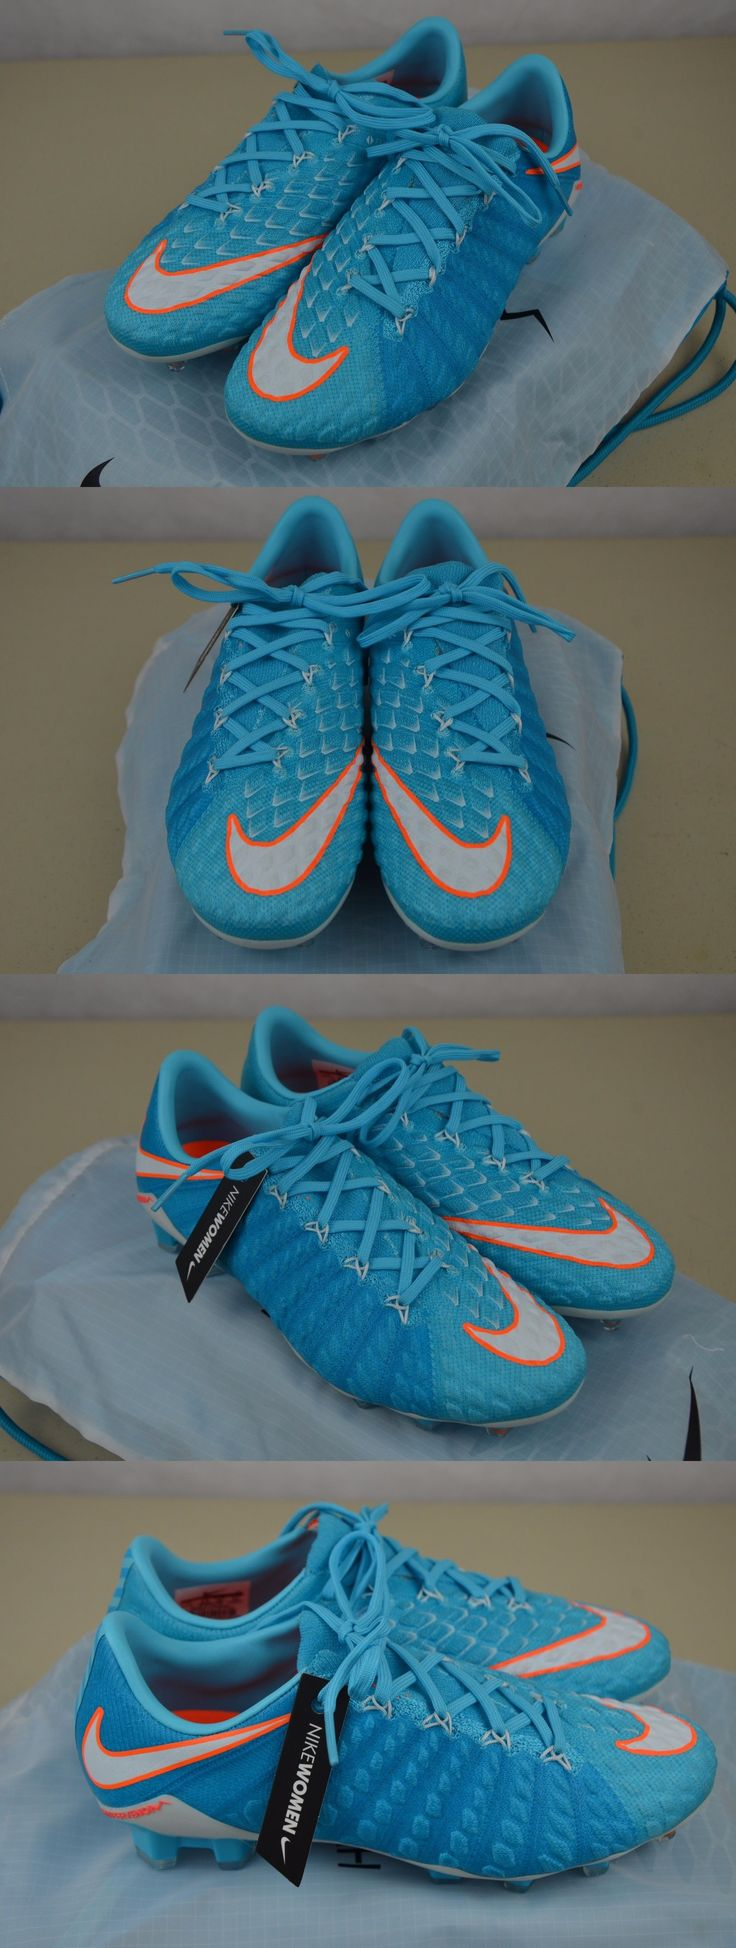 Women 159176: Nike Women S Polar Blue White Hypervenom Phantom Iii Fg Soccer Cleats 881543-414 -> BUY IT NOW ONLY: $119.95 on eBay!